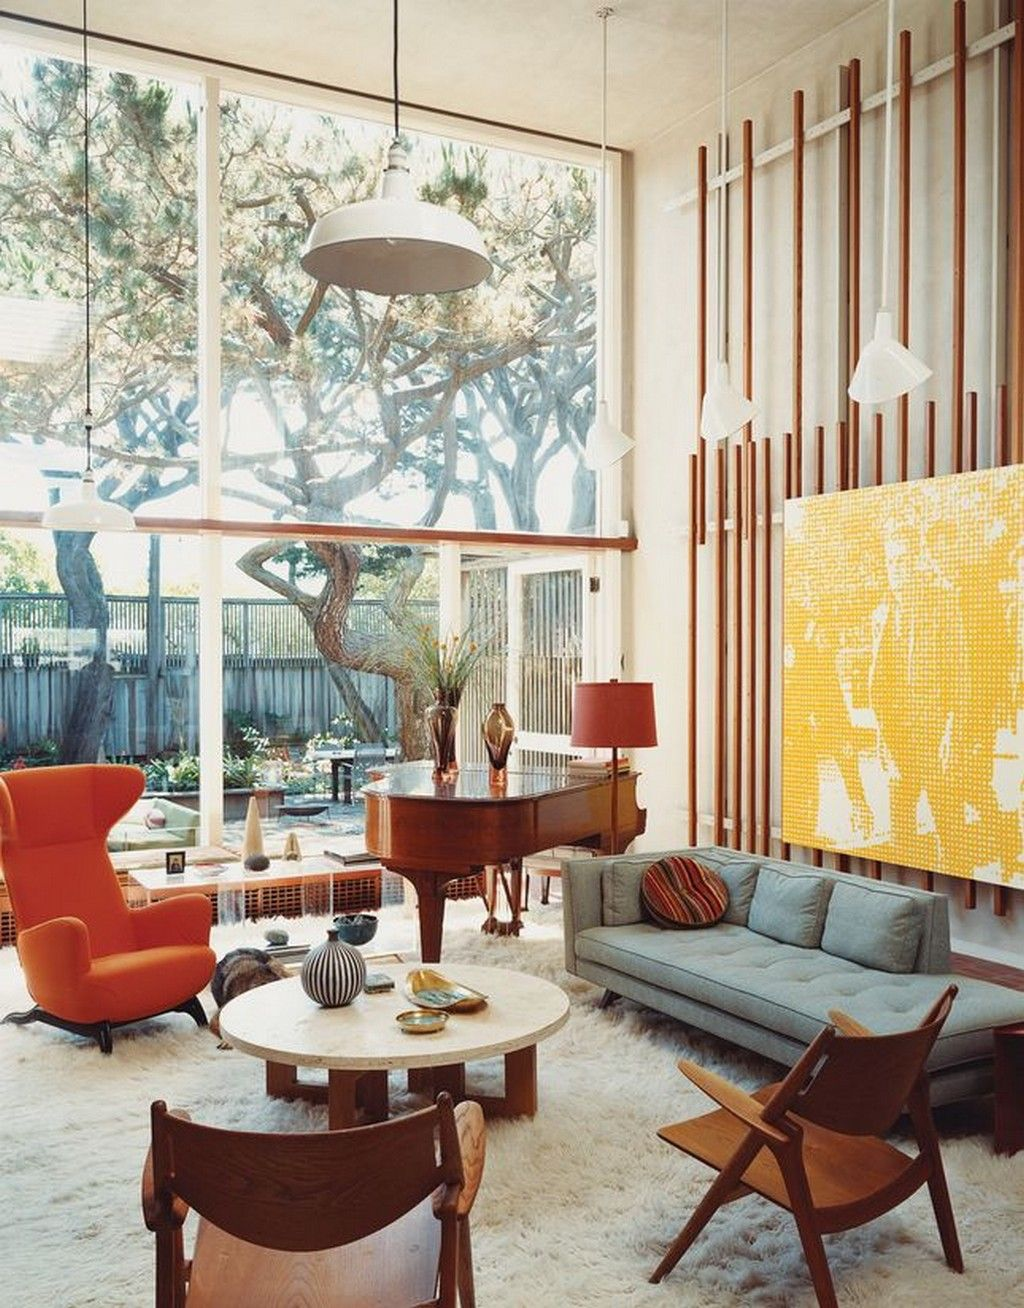 Living Room Design Styles Fascinating Living Room 60S Retro Interior Design Style With Small Round Inspiration Design